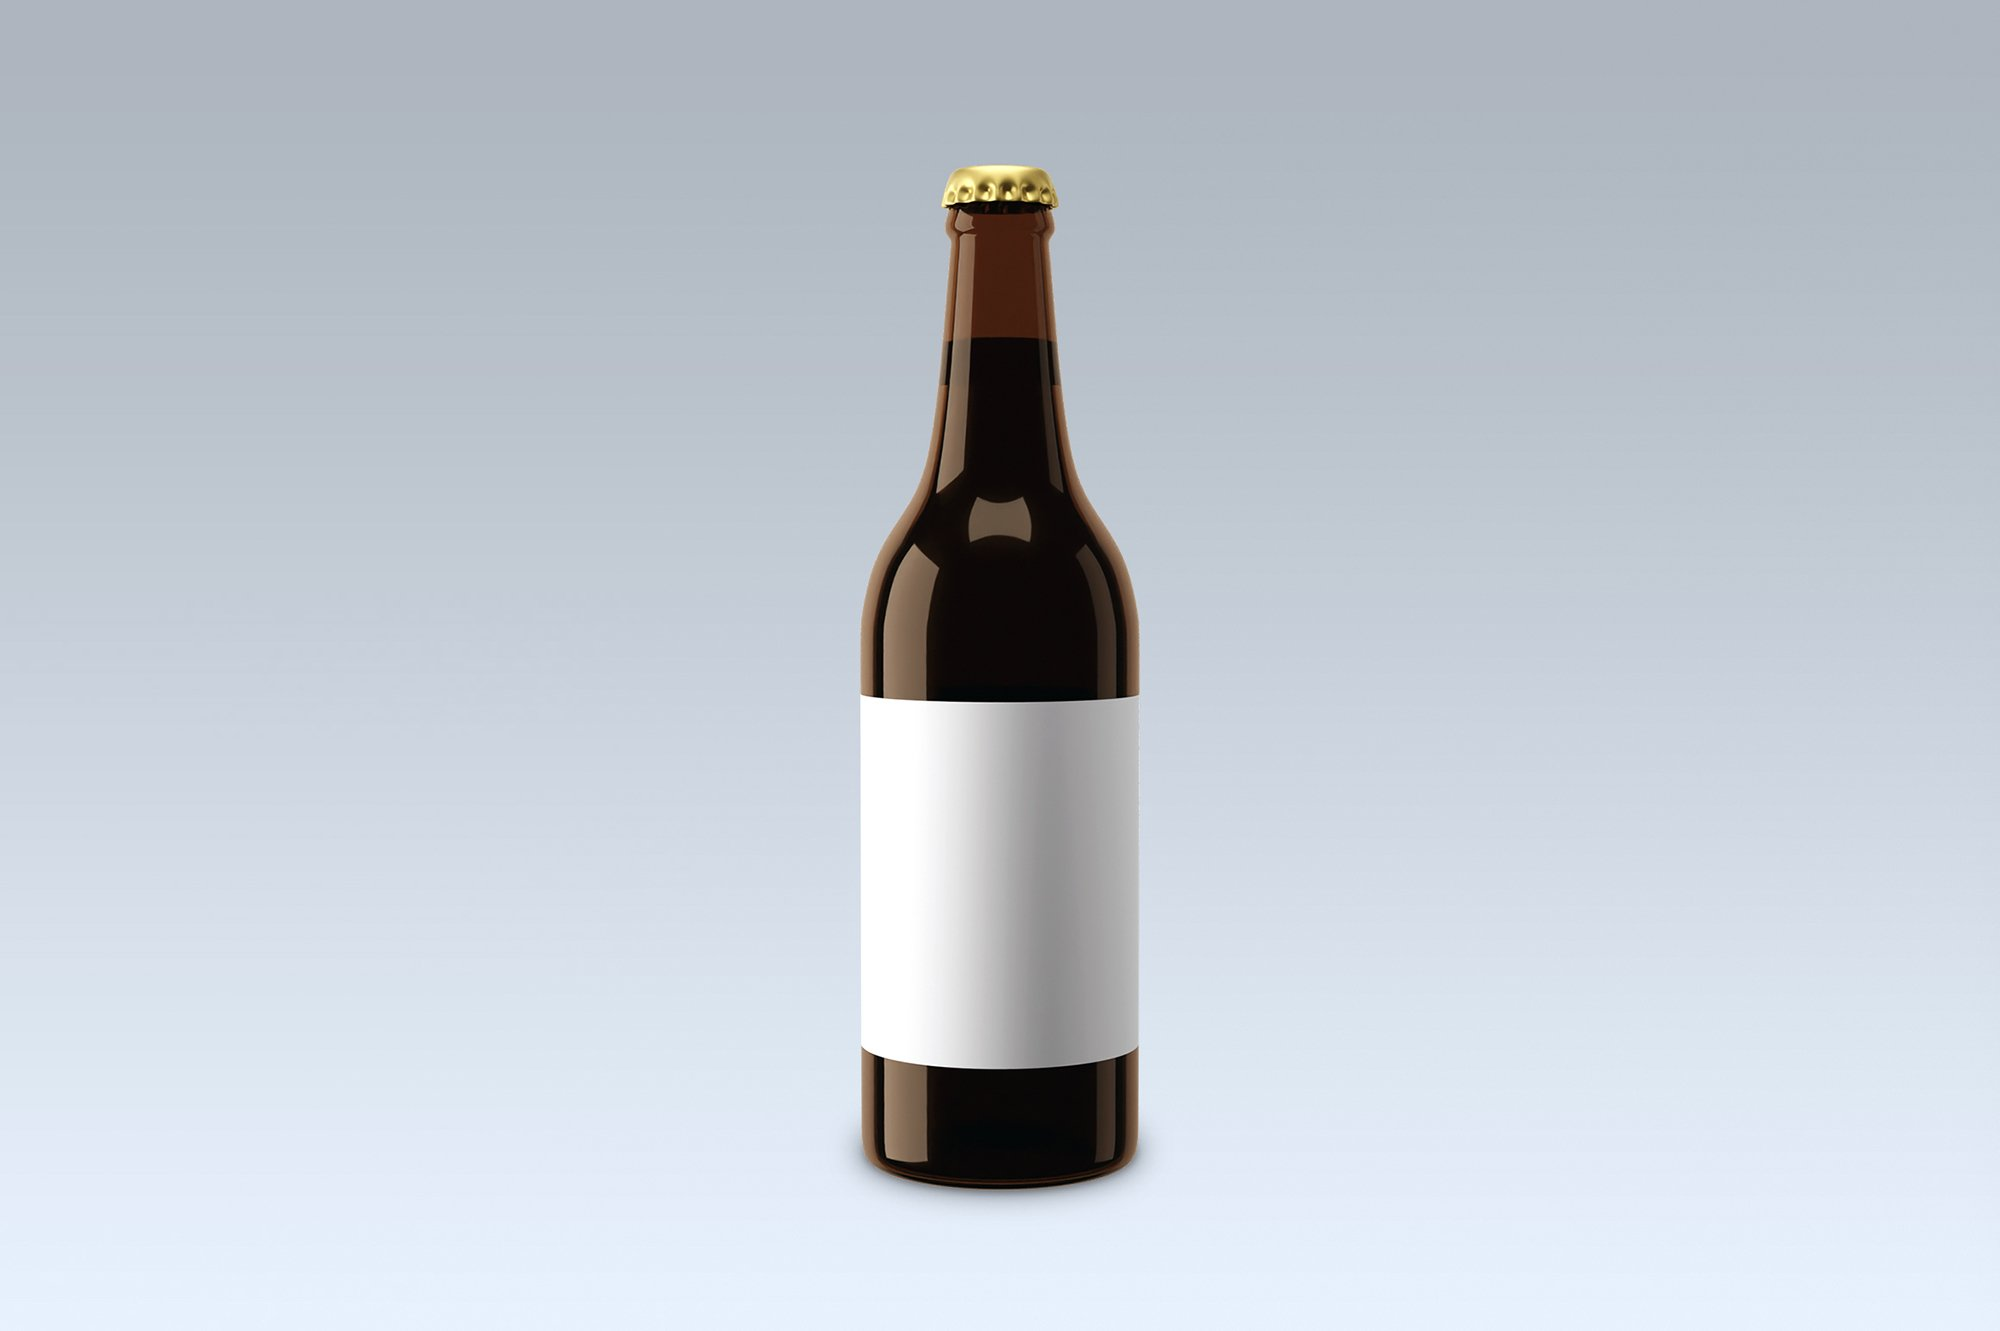 Beer bottle, mock up. example image 3